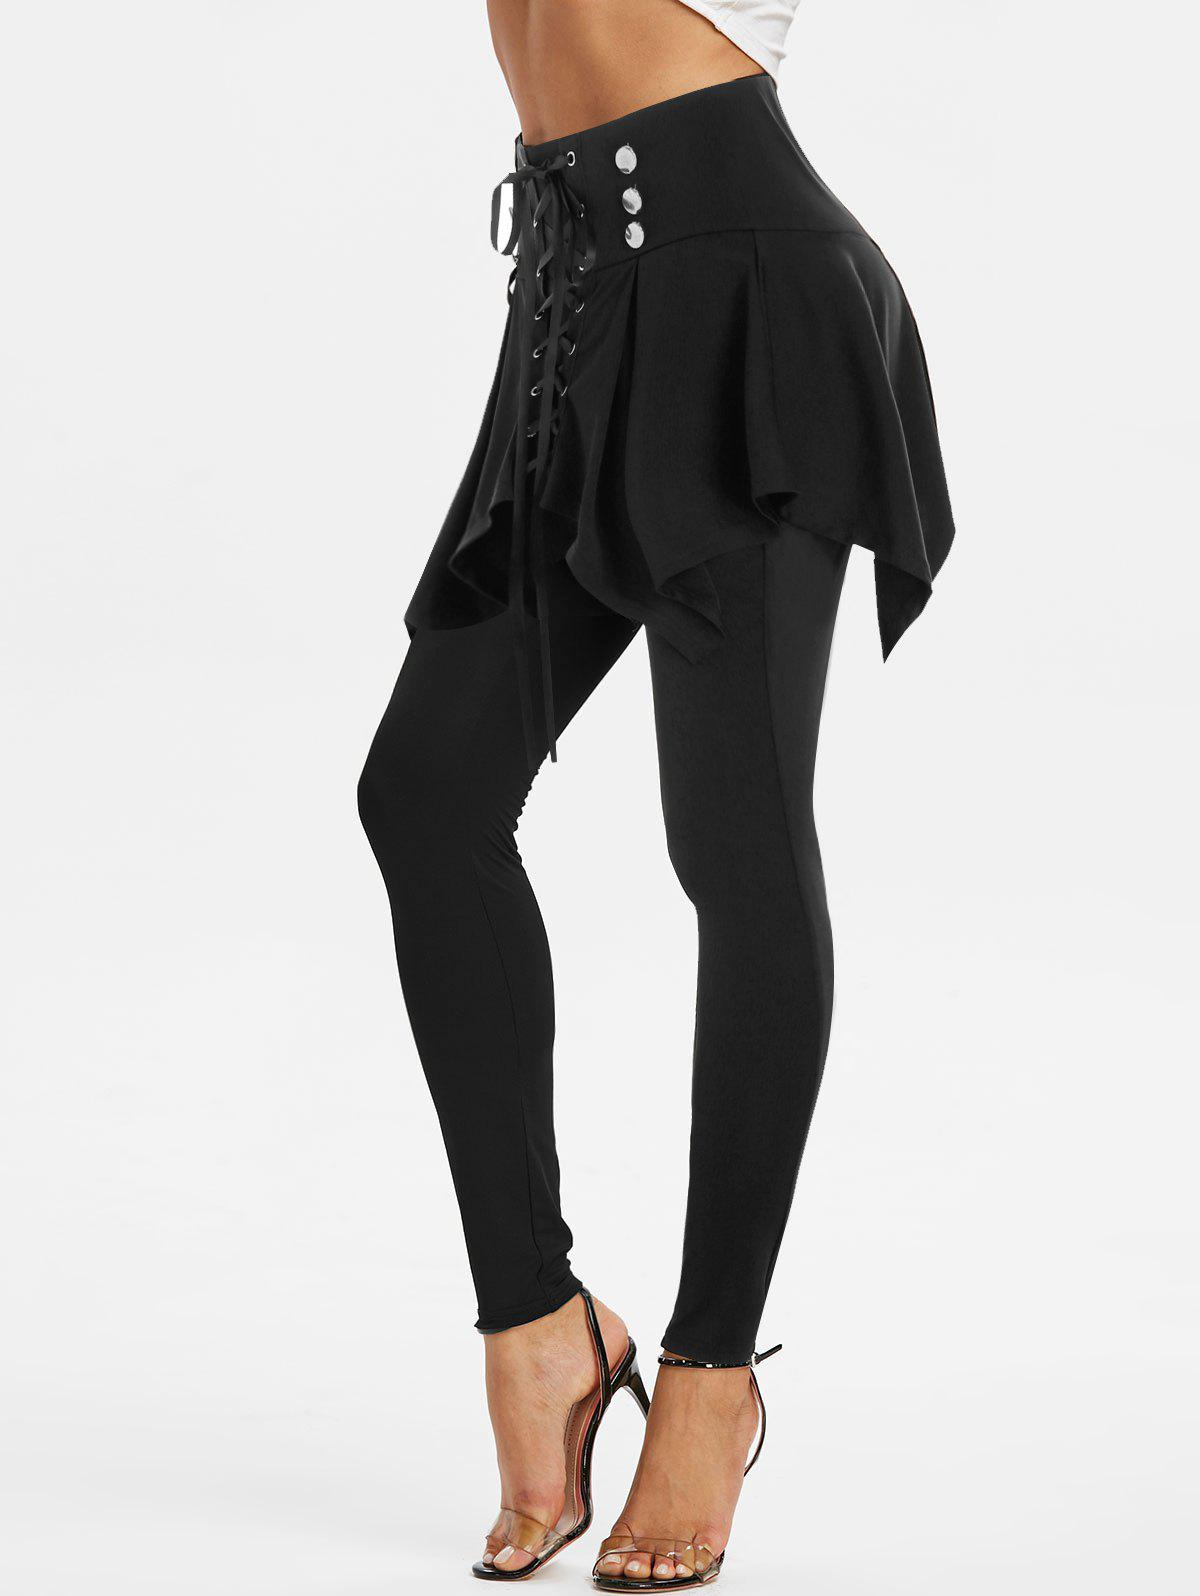 High Waisted Lace-up Front Skirted Pants - BLACK 3XL